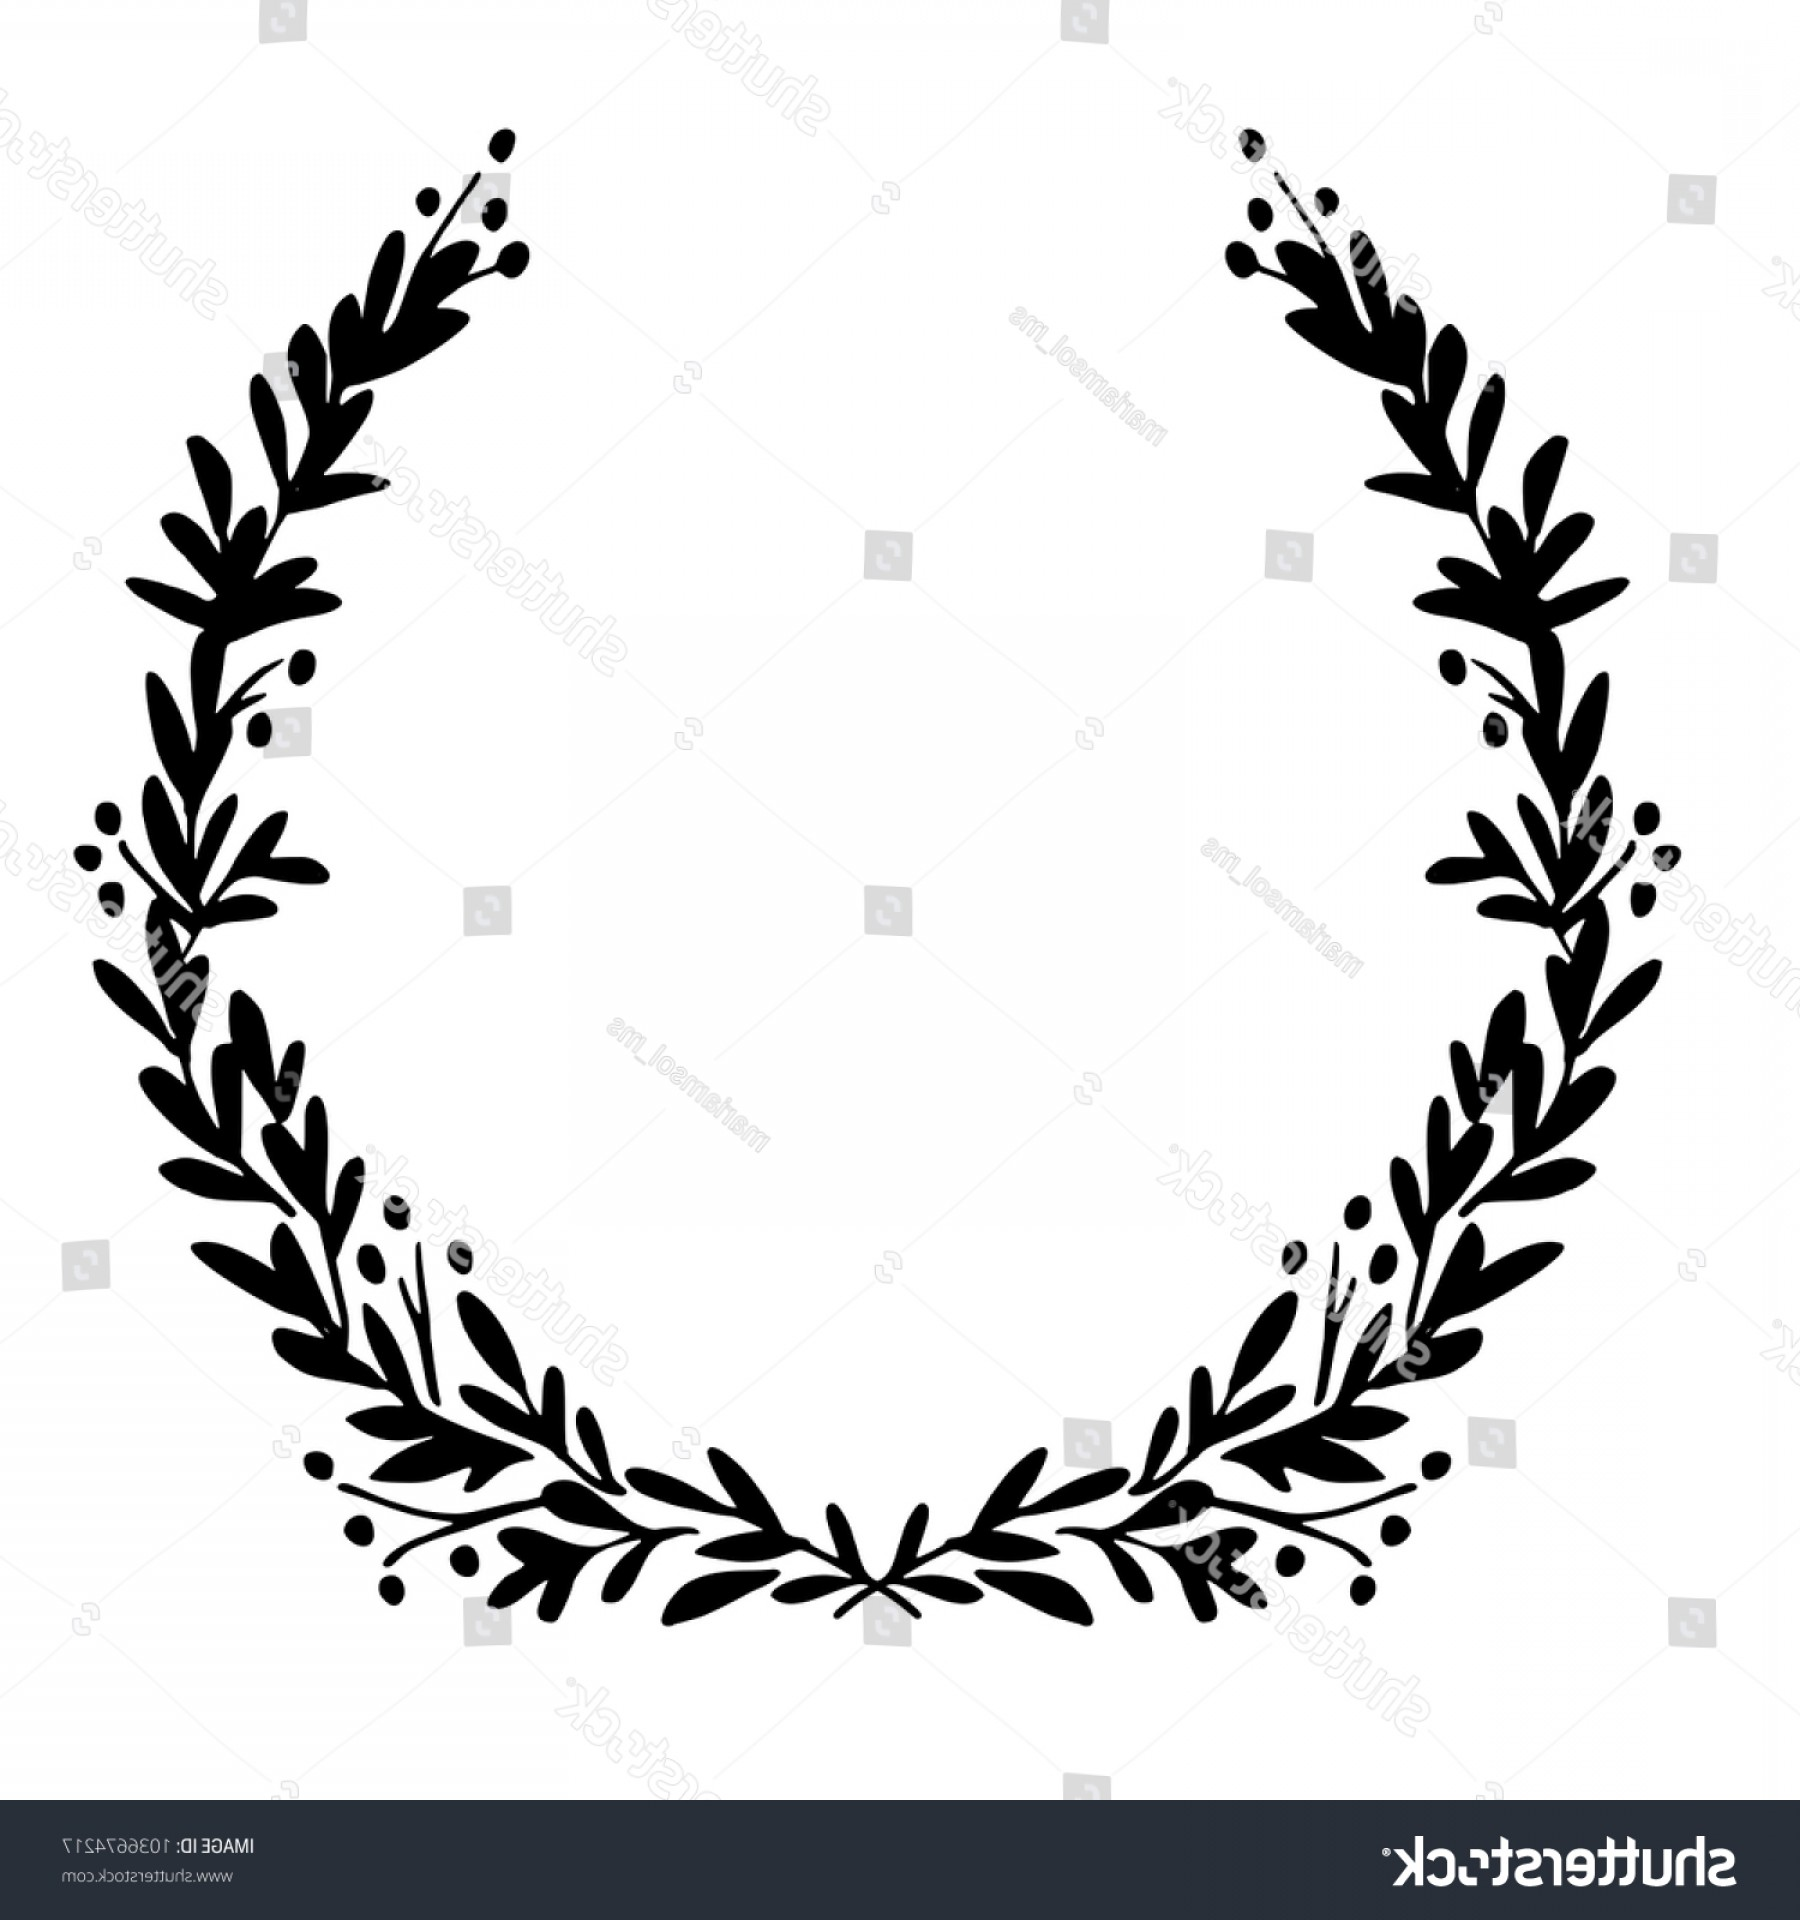 Floral Laurel Wreath Vector: Black White Festive Wreath Hand Drawn